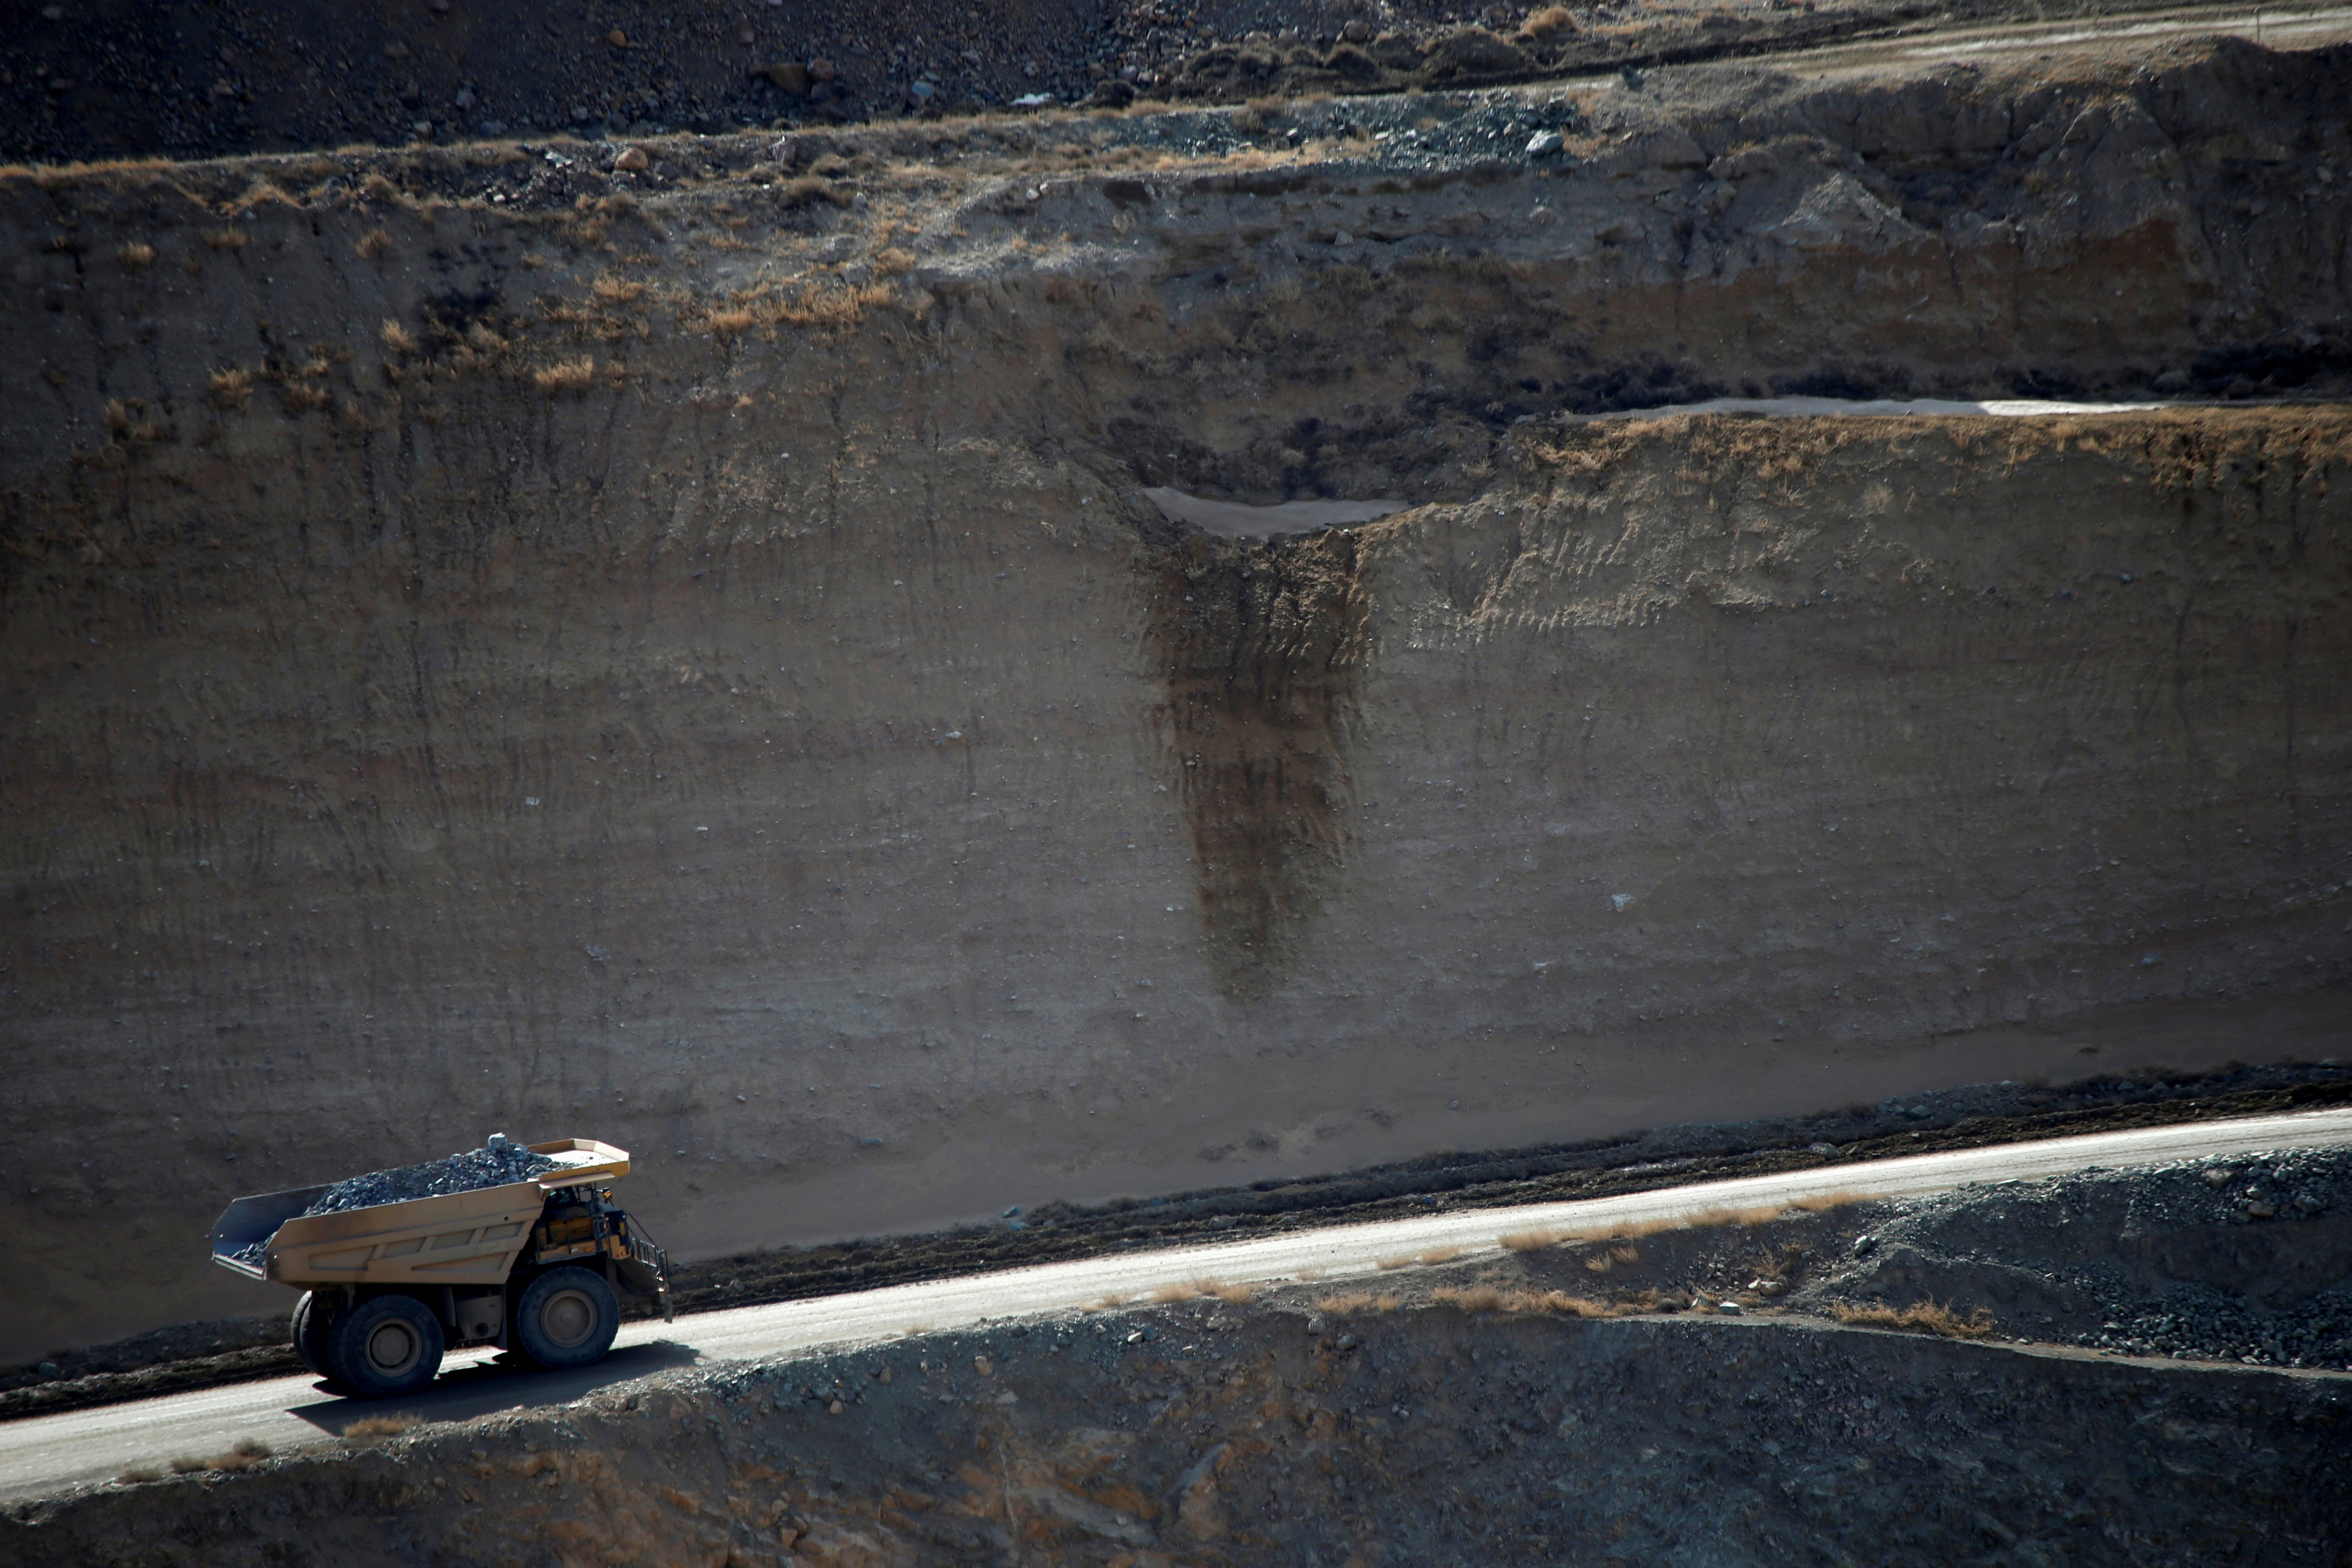 A mining truck takes ore from the open-pit mine at the MP Materials rare earth mine in Mountain Pass, California, U.S. January 30, 2020. REUTERS/Steve Marcus